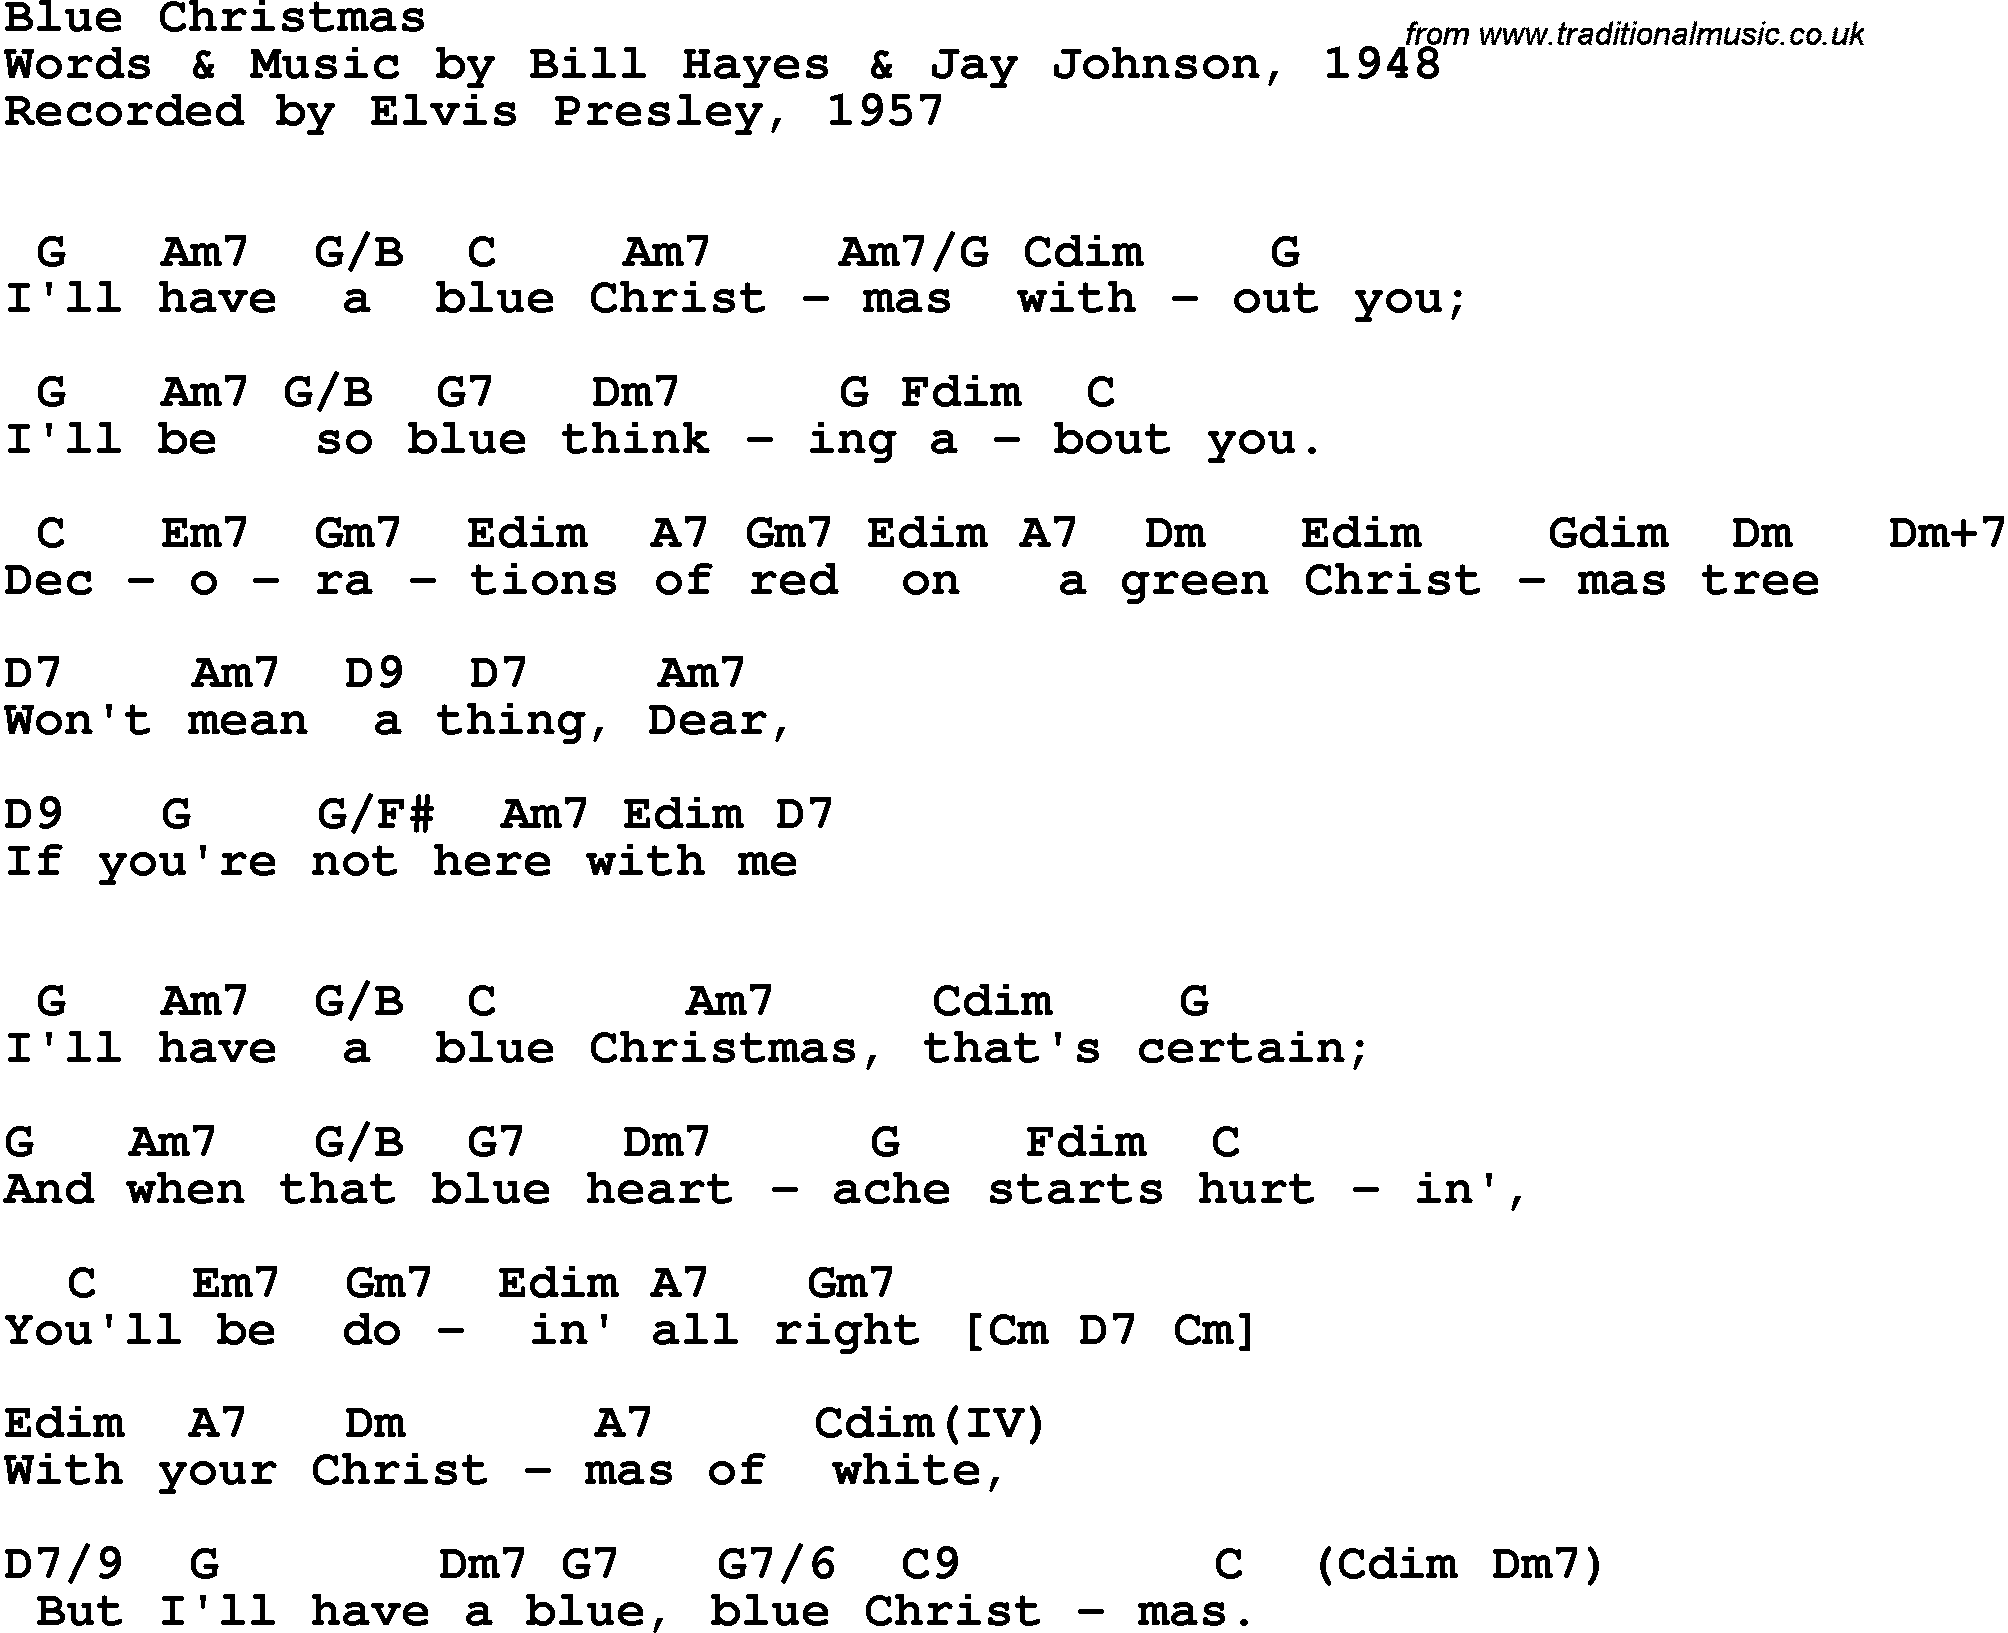 song lyrics with guitar chords for blue christmas elvis presley 1957 - I Ll Have A Blue Christmas Lyrics